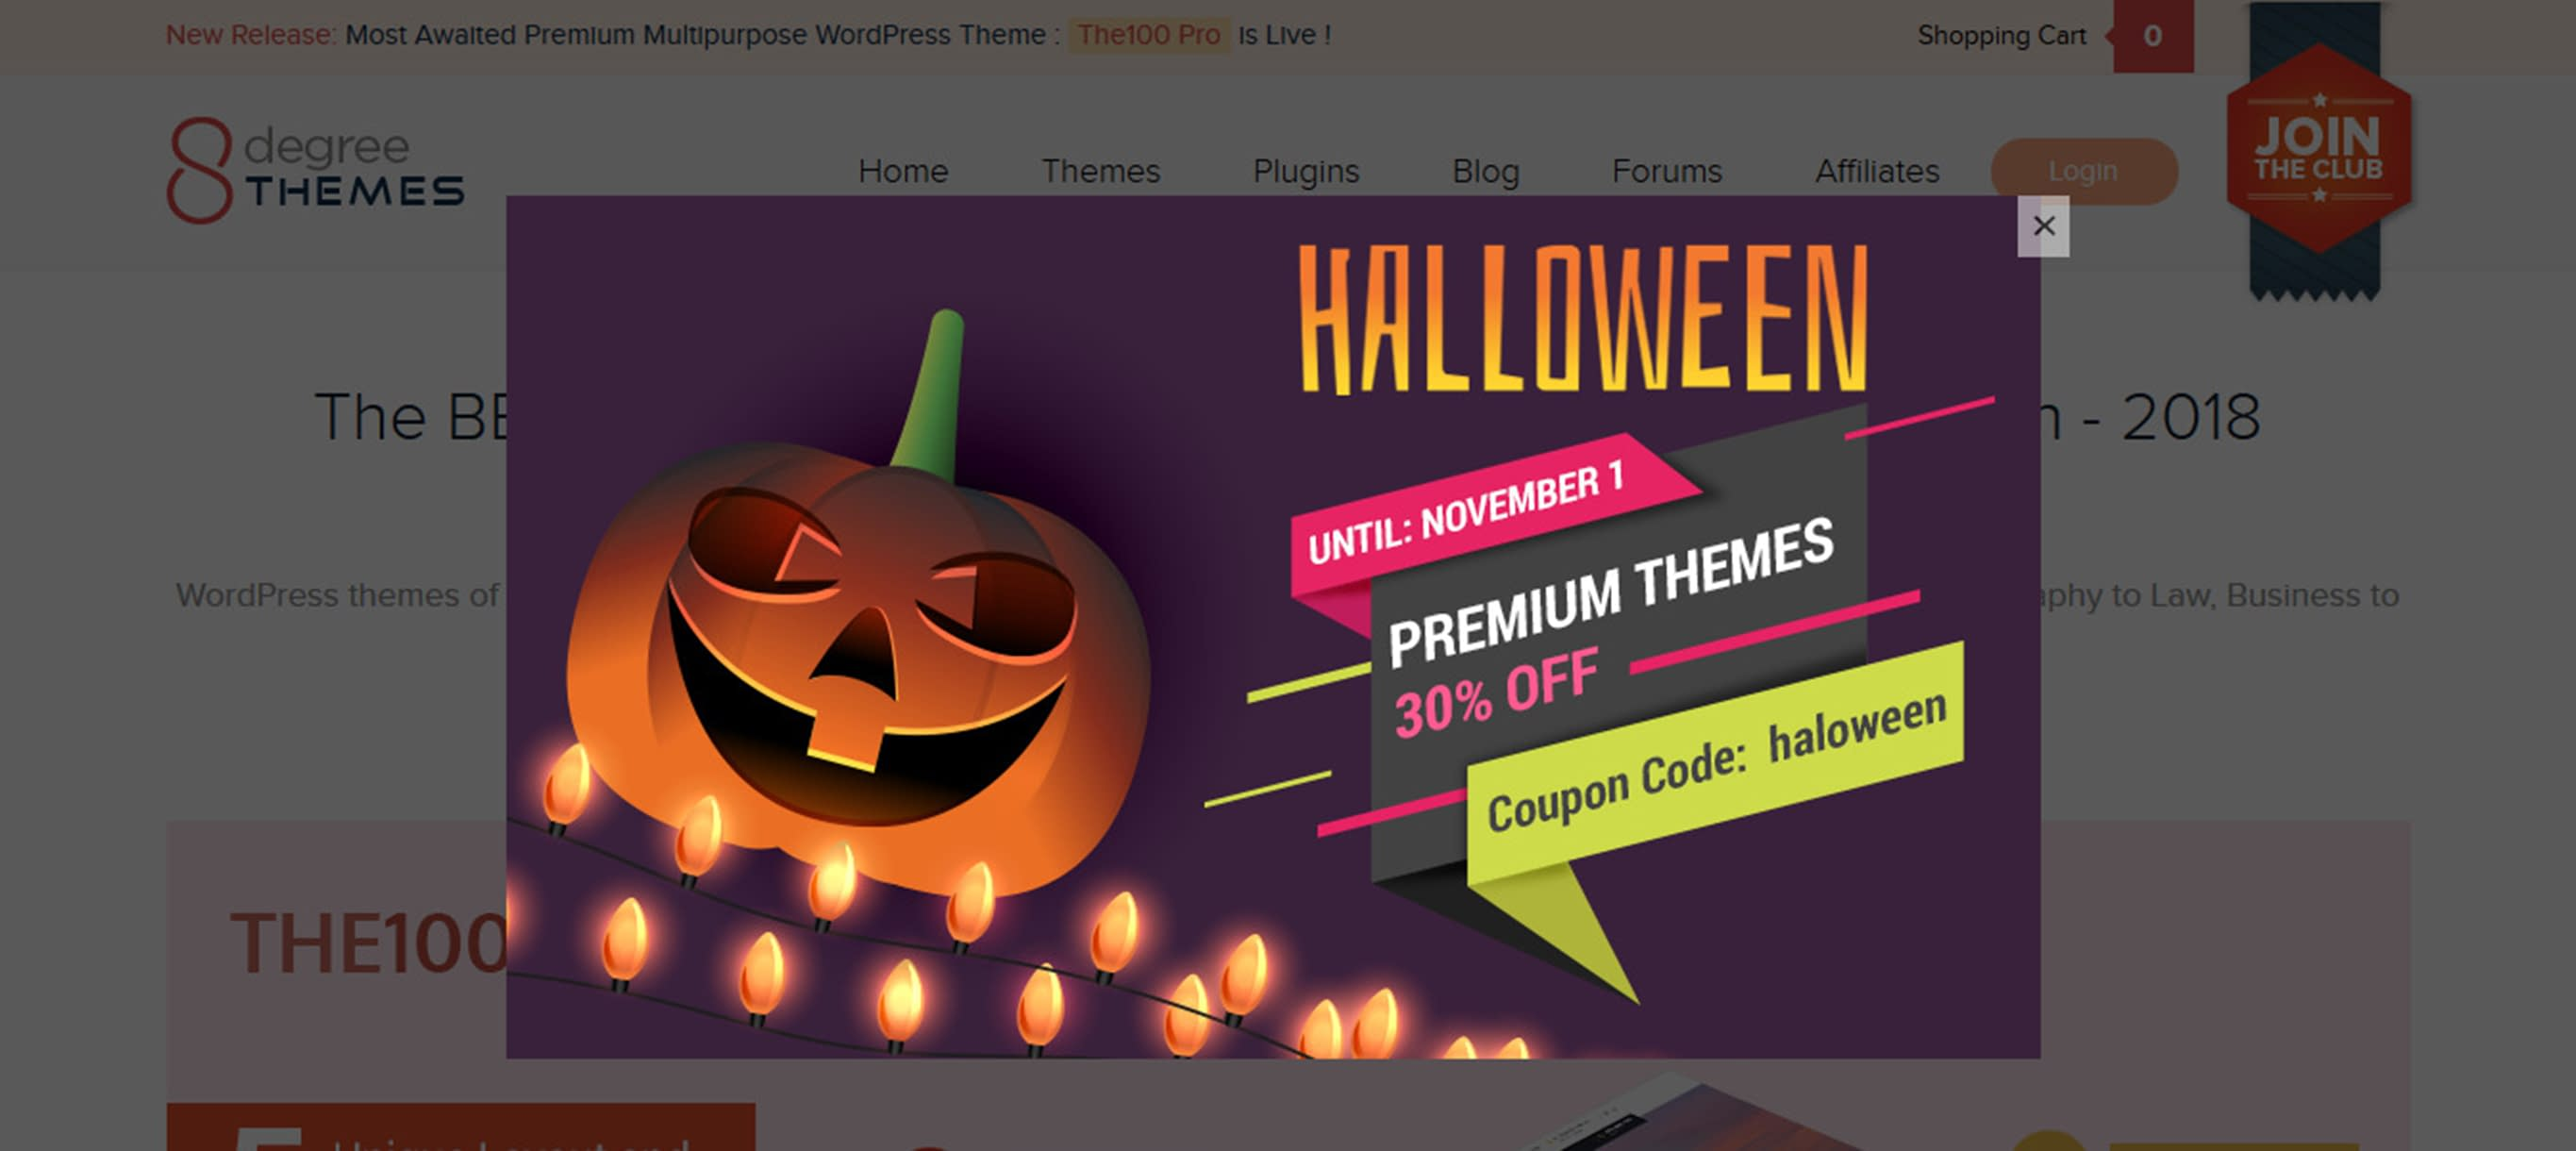 WordPress Deals and Discounts for Halloween 2018 - 8Degree Themes